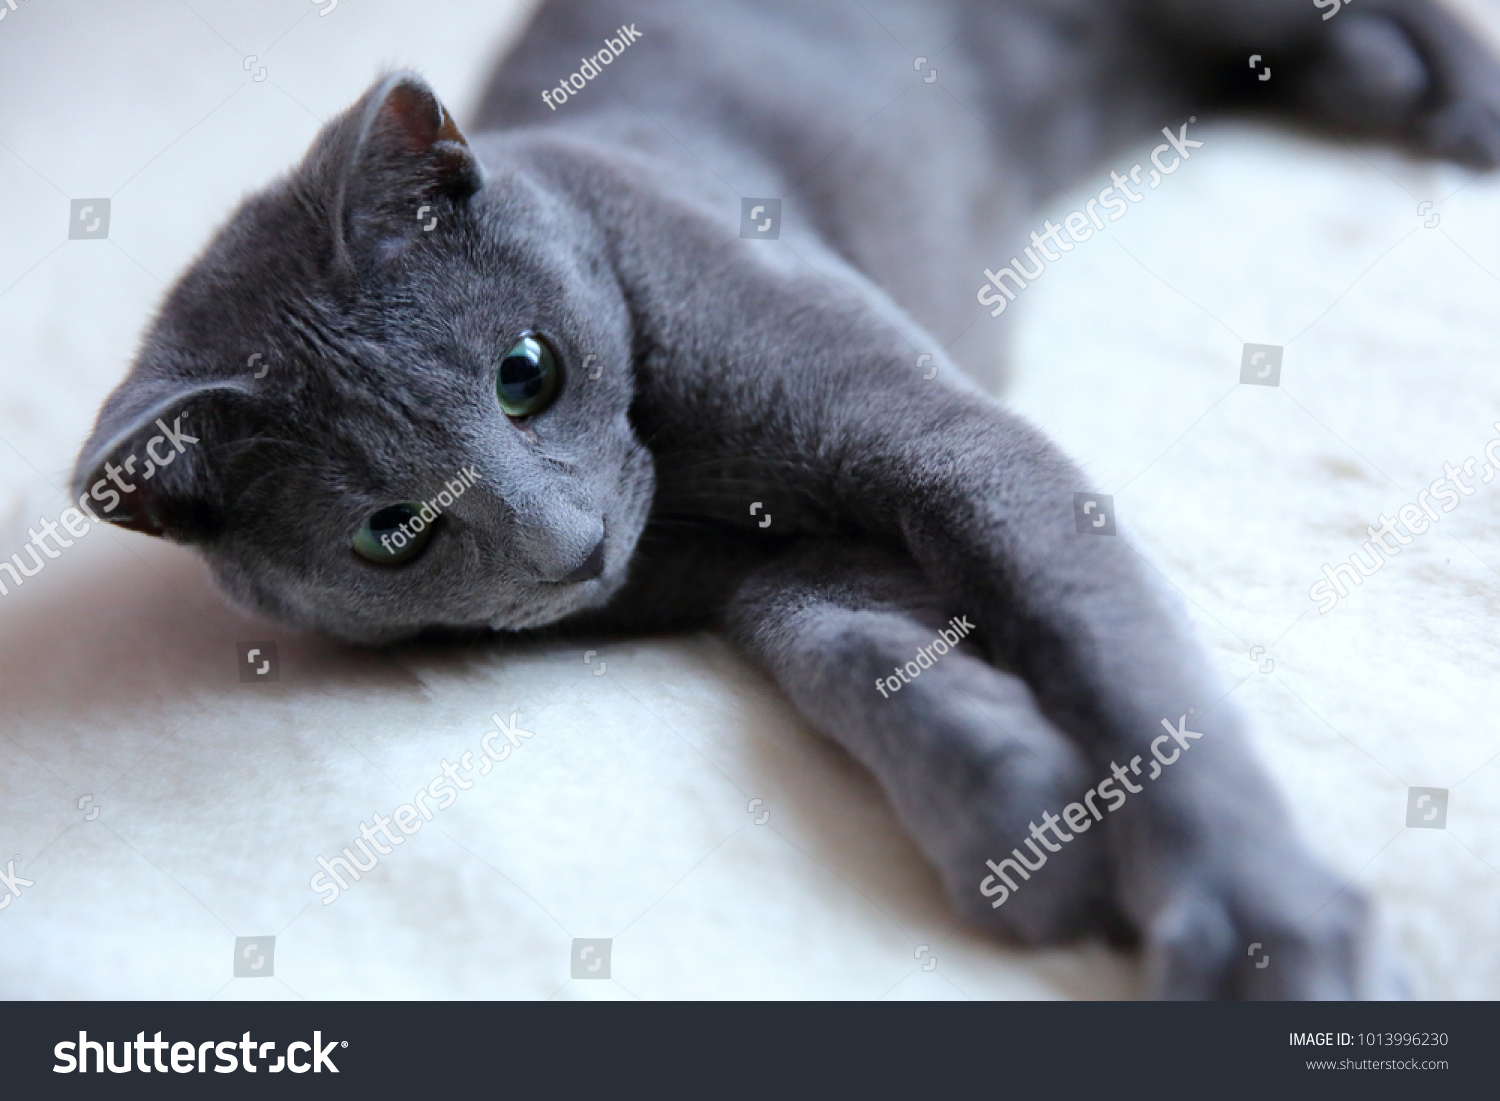 Domestic Cats Great Pets Cuddle Hug Stock Photo Edit Now 1013996230